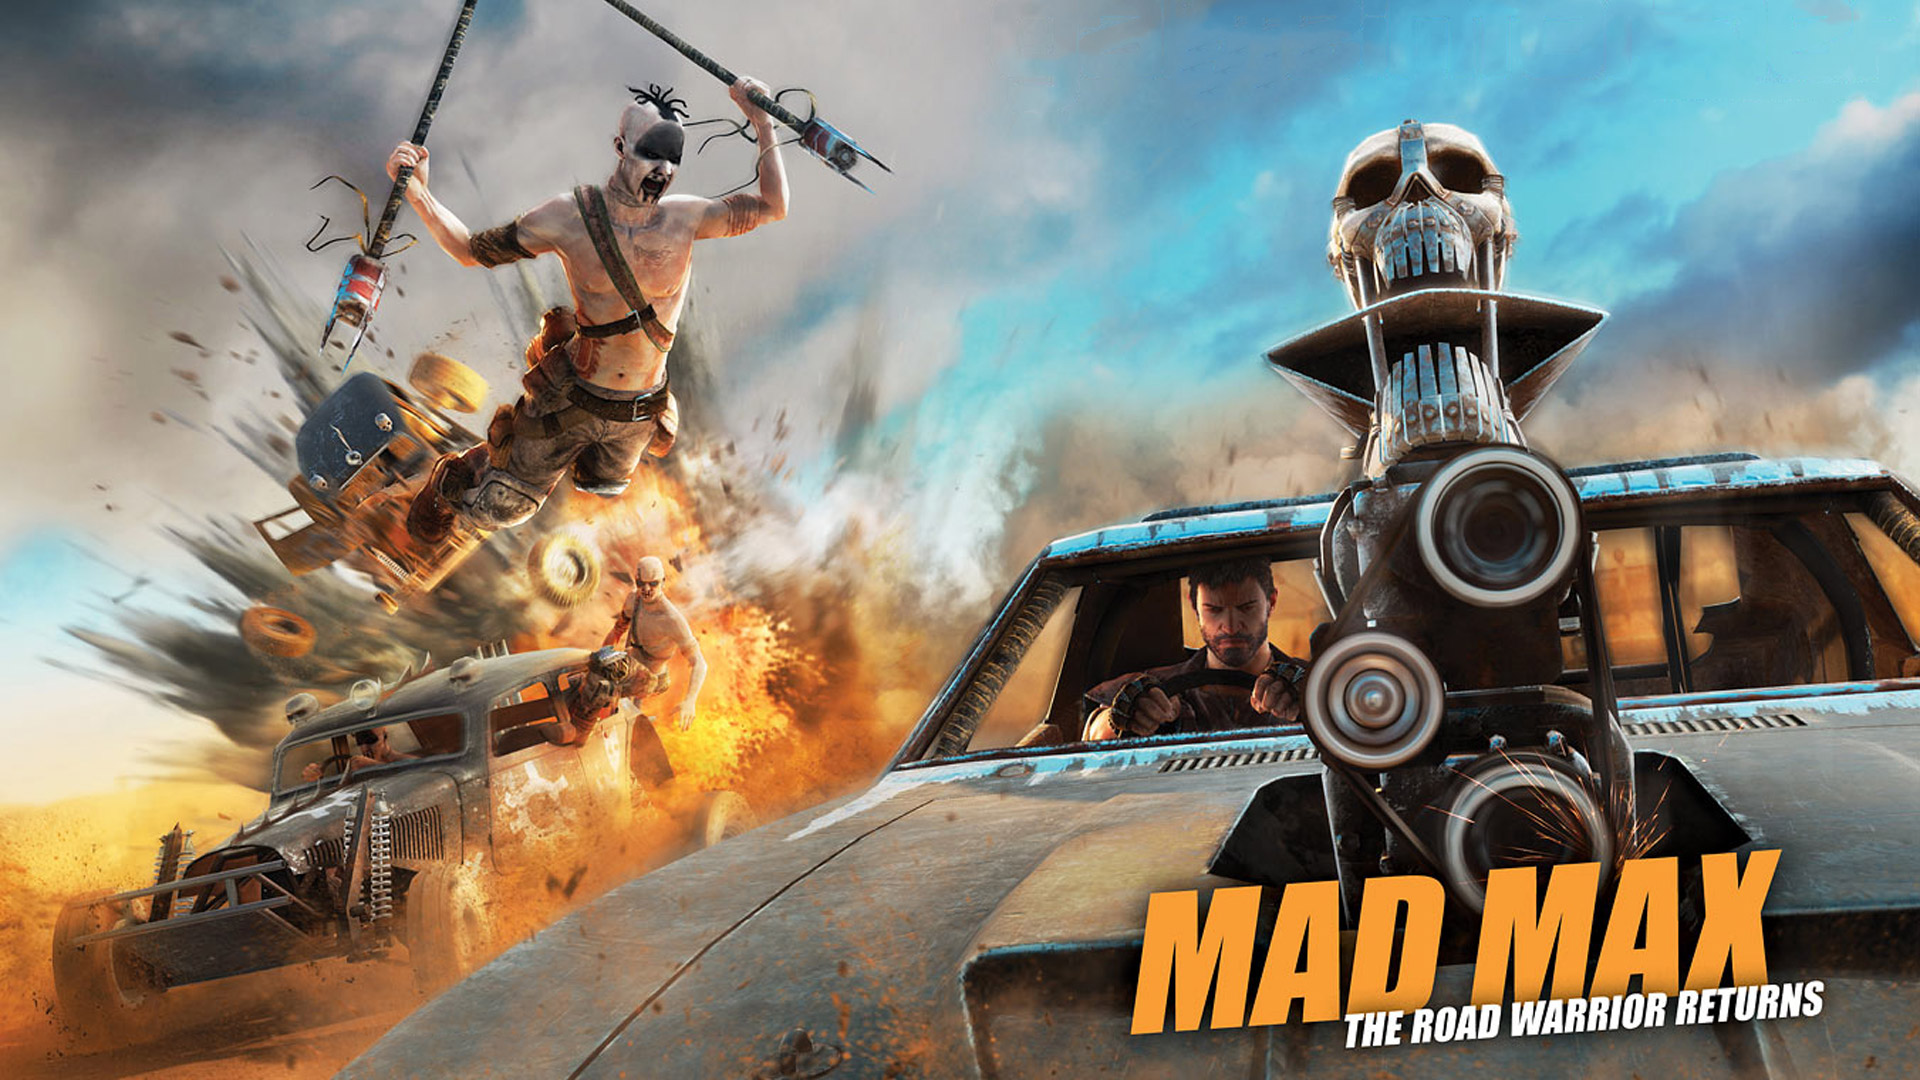 Mad Max Wallpaper in 1920x1080